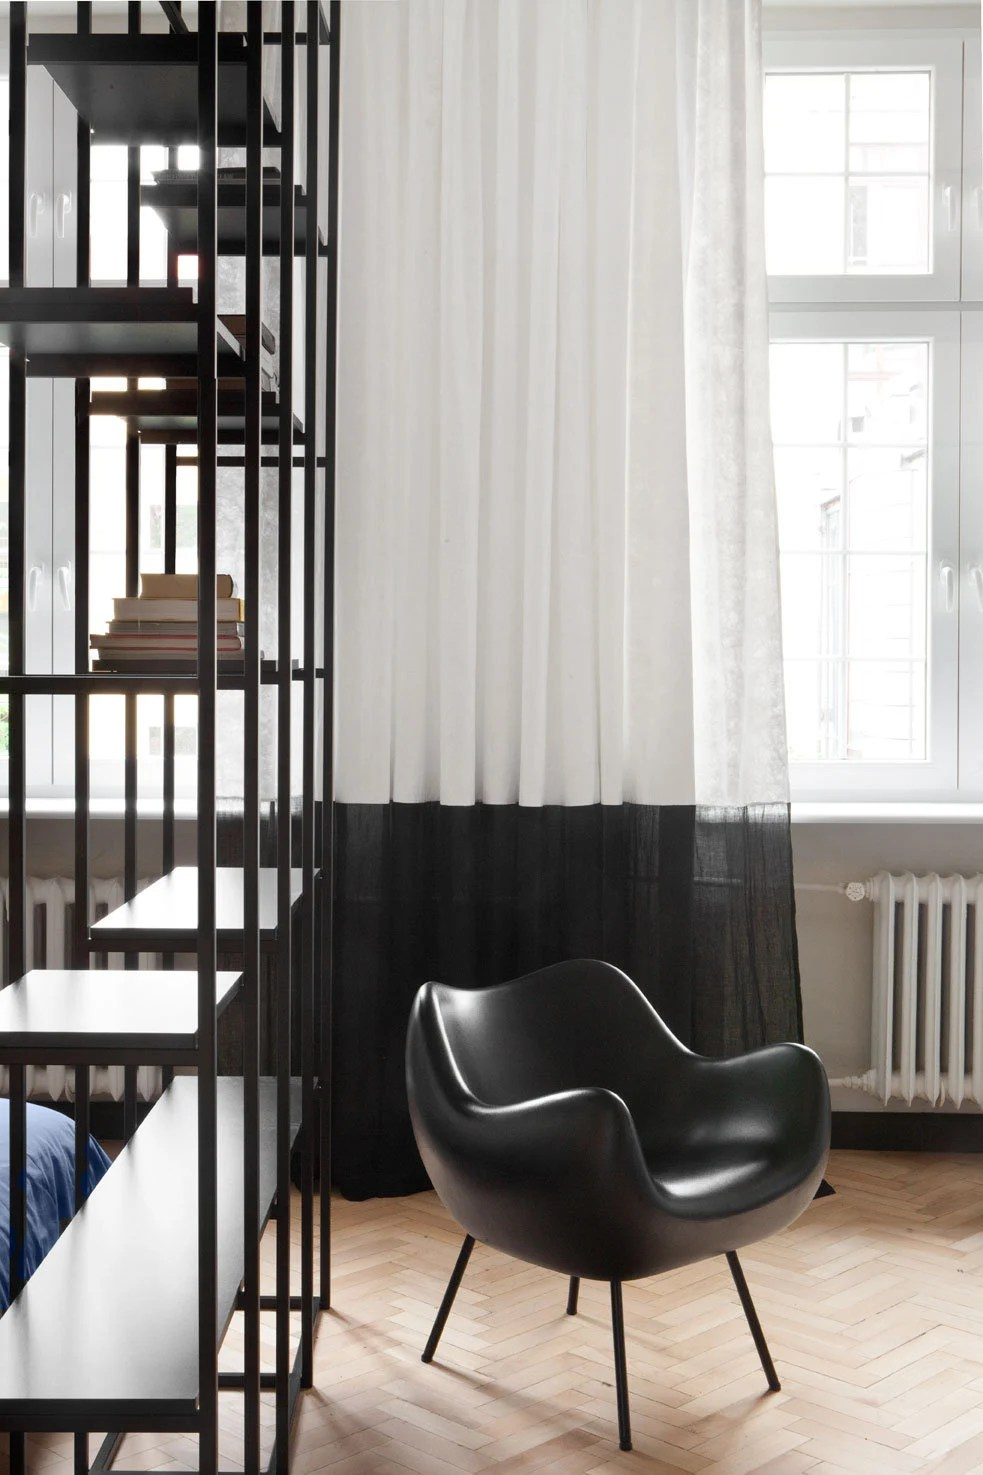 Scandinavian Ready Made Curtains Eco Friendly White Black Window Curtains In Scandinavian Style Thin Curtains In Scandinavian Design Industrial Window Decor